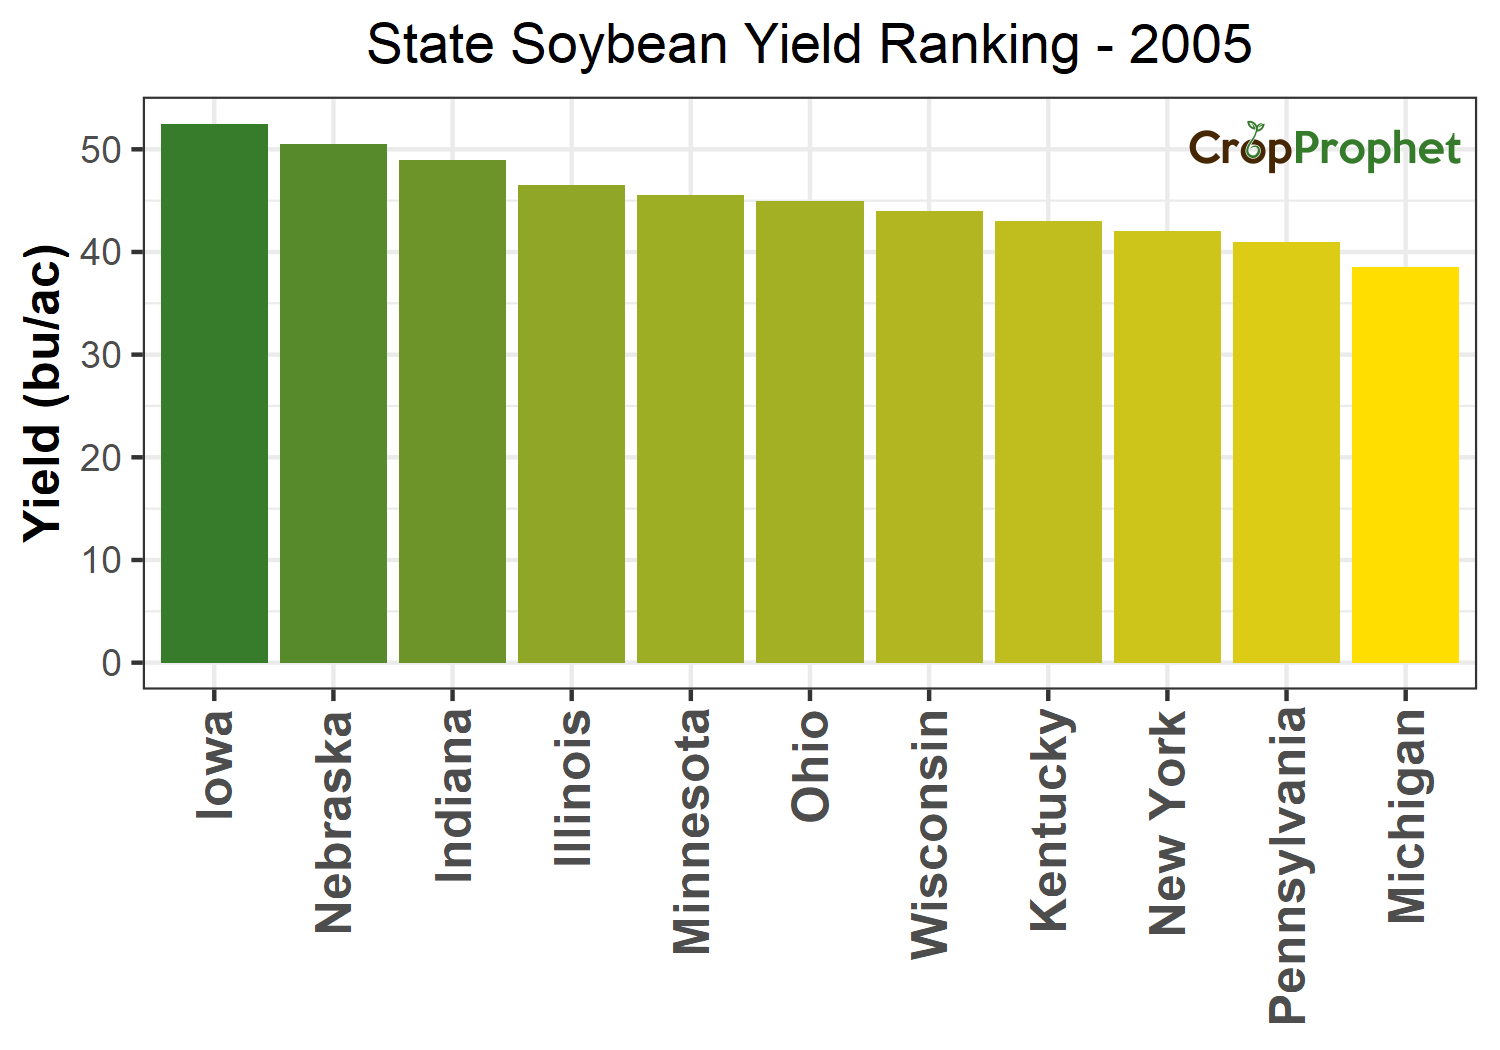 Soybean Production by State - 2005 Rankings